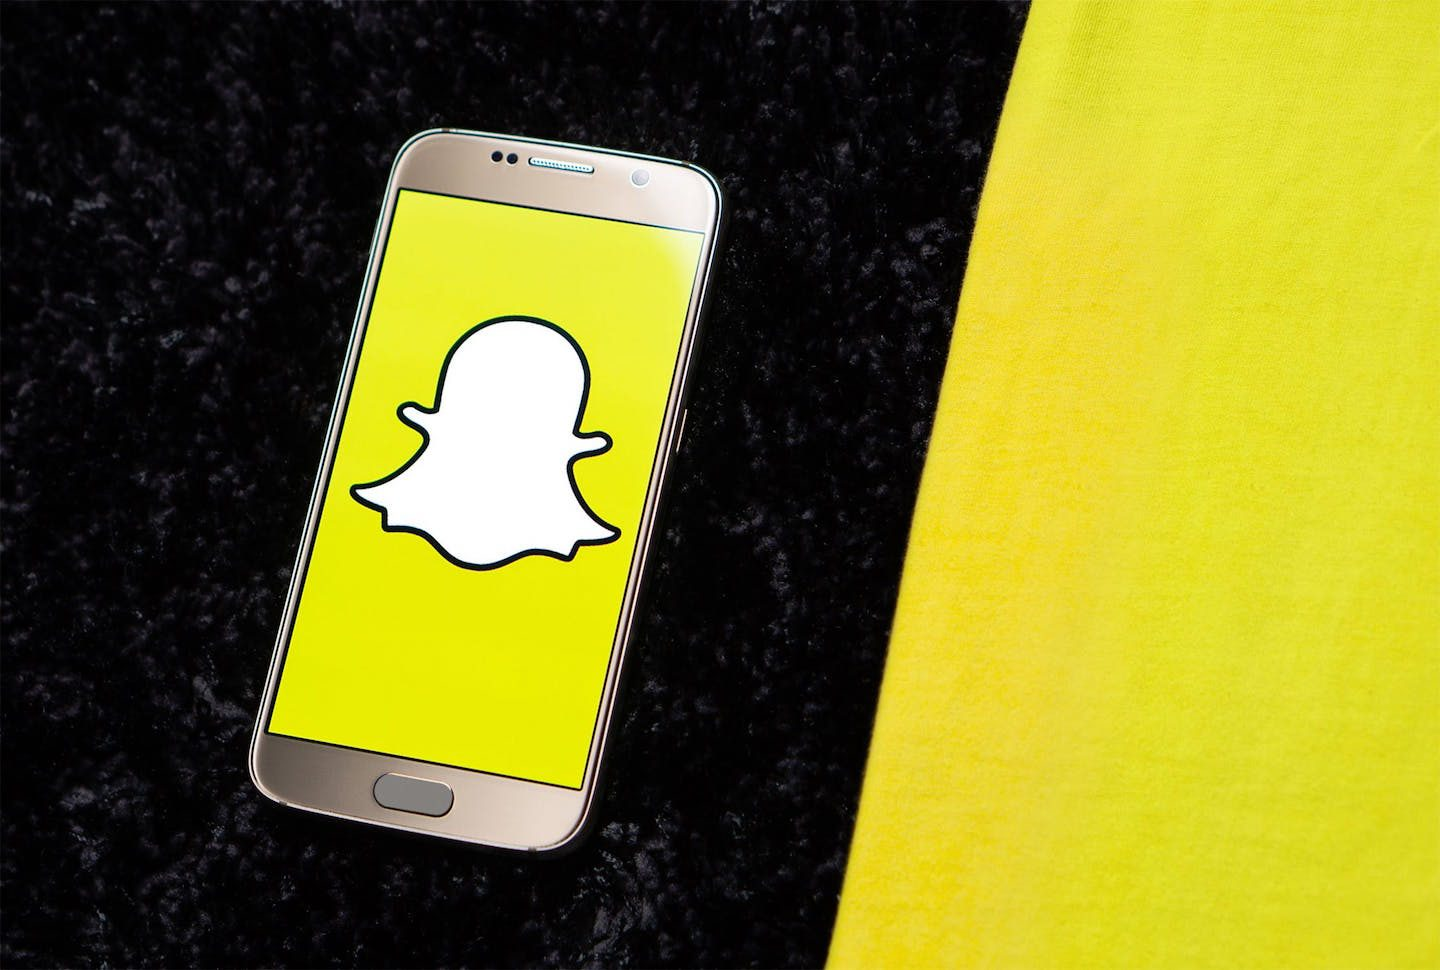 Snapchat growth falters as redesign woes impact results